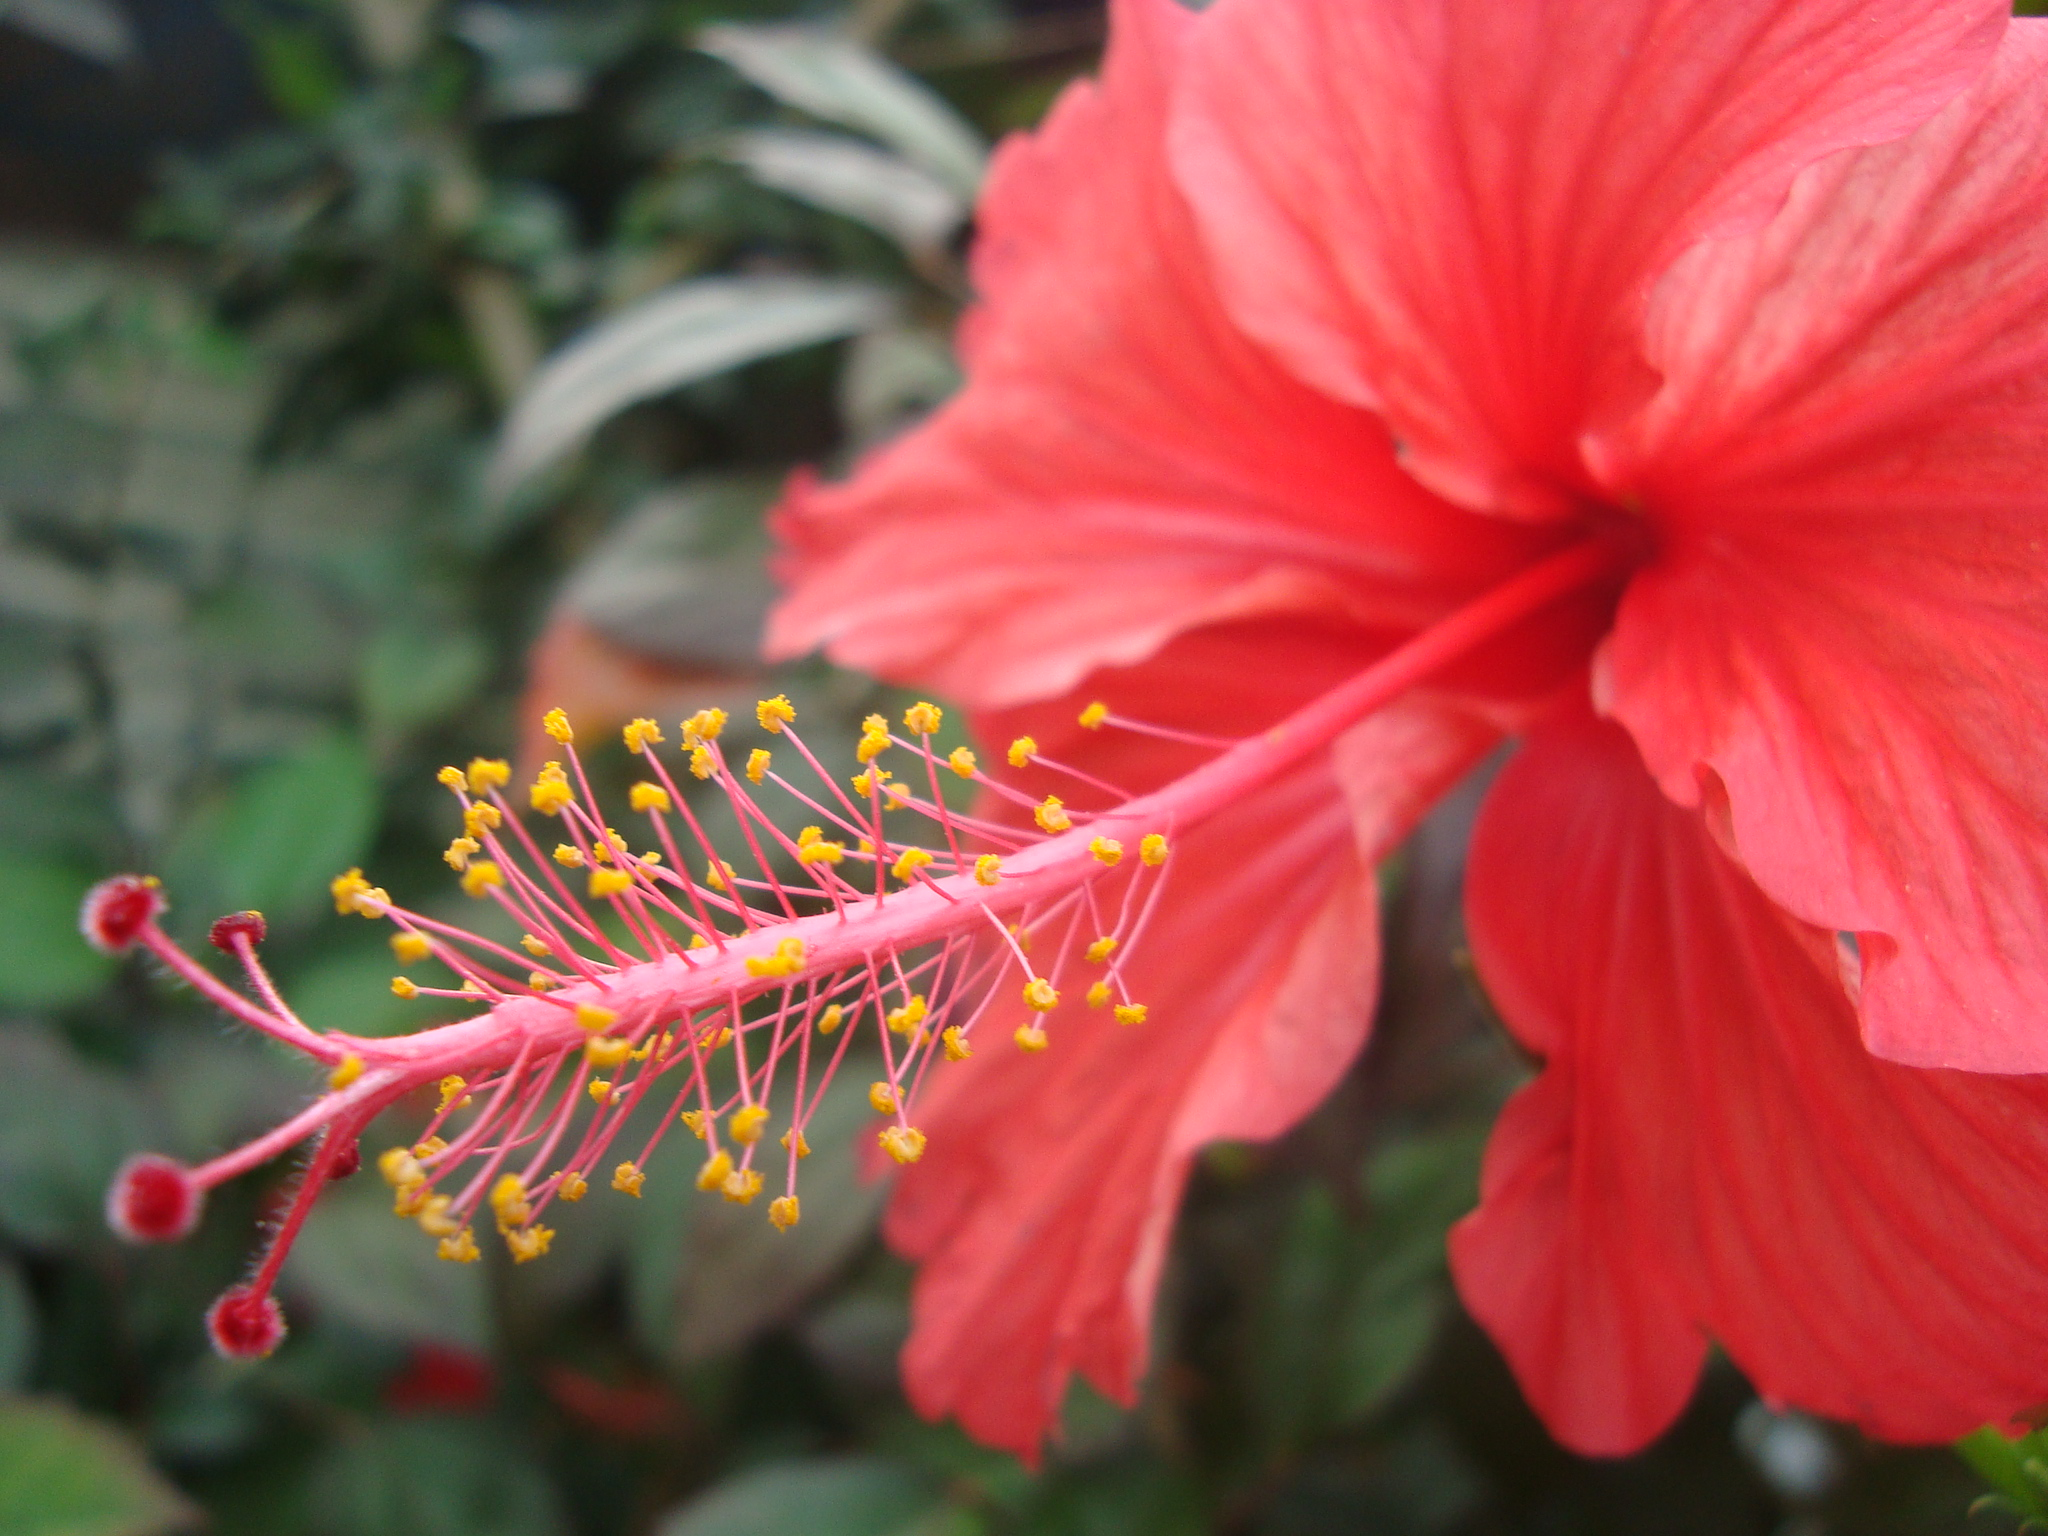 Filehibiscus flowerg wikimedia commons filehibiscus flower izmirmasajfo